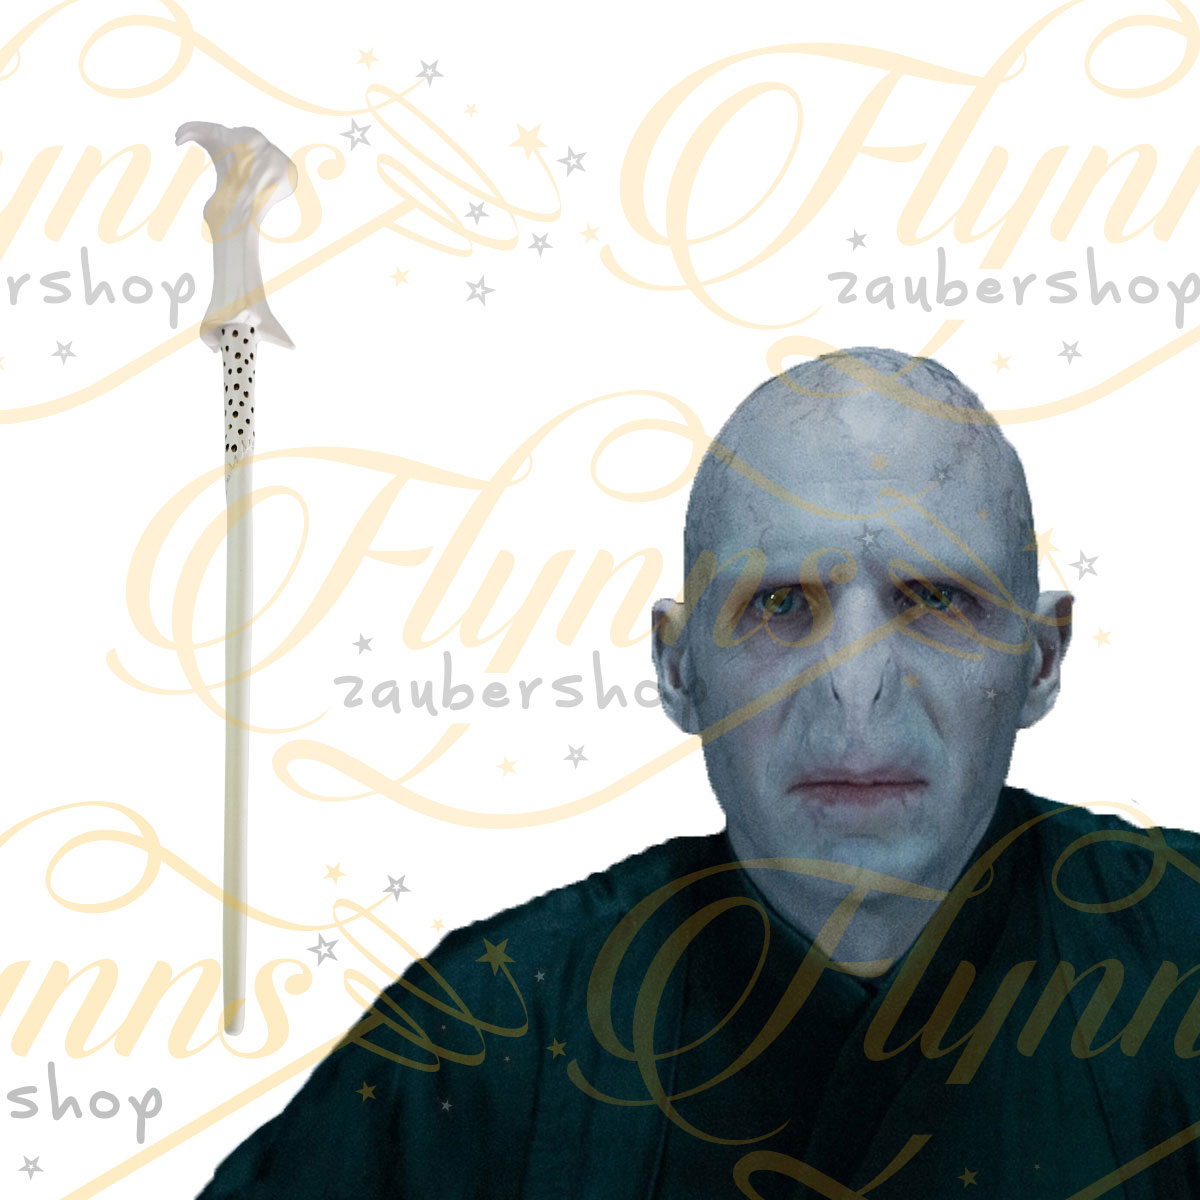 Lord Voldemort | Harry Potter | Flynns Zaubershop